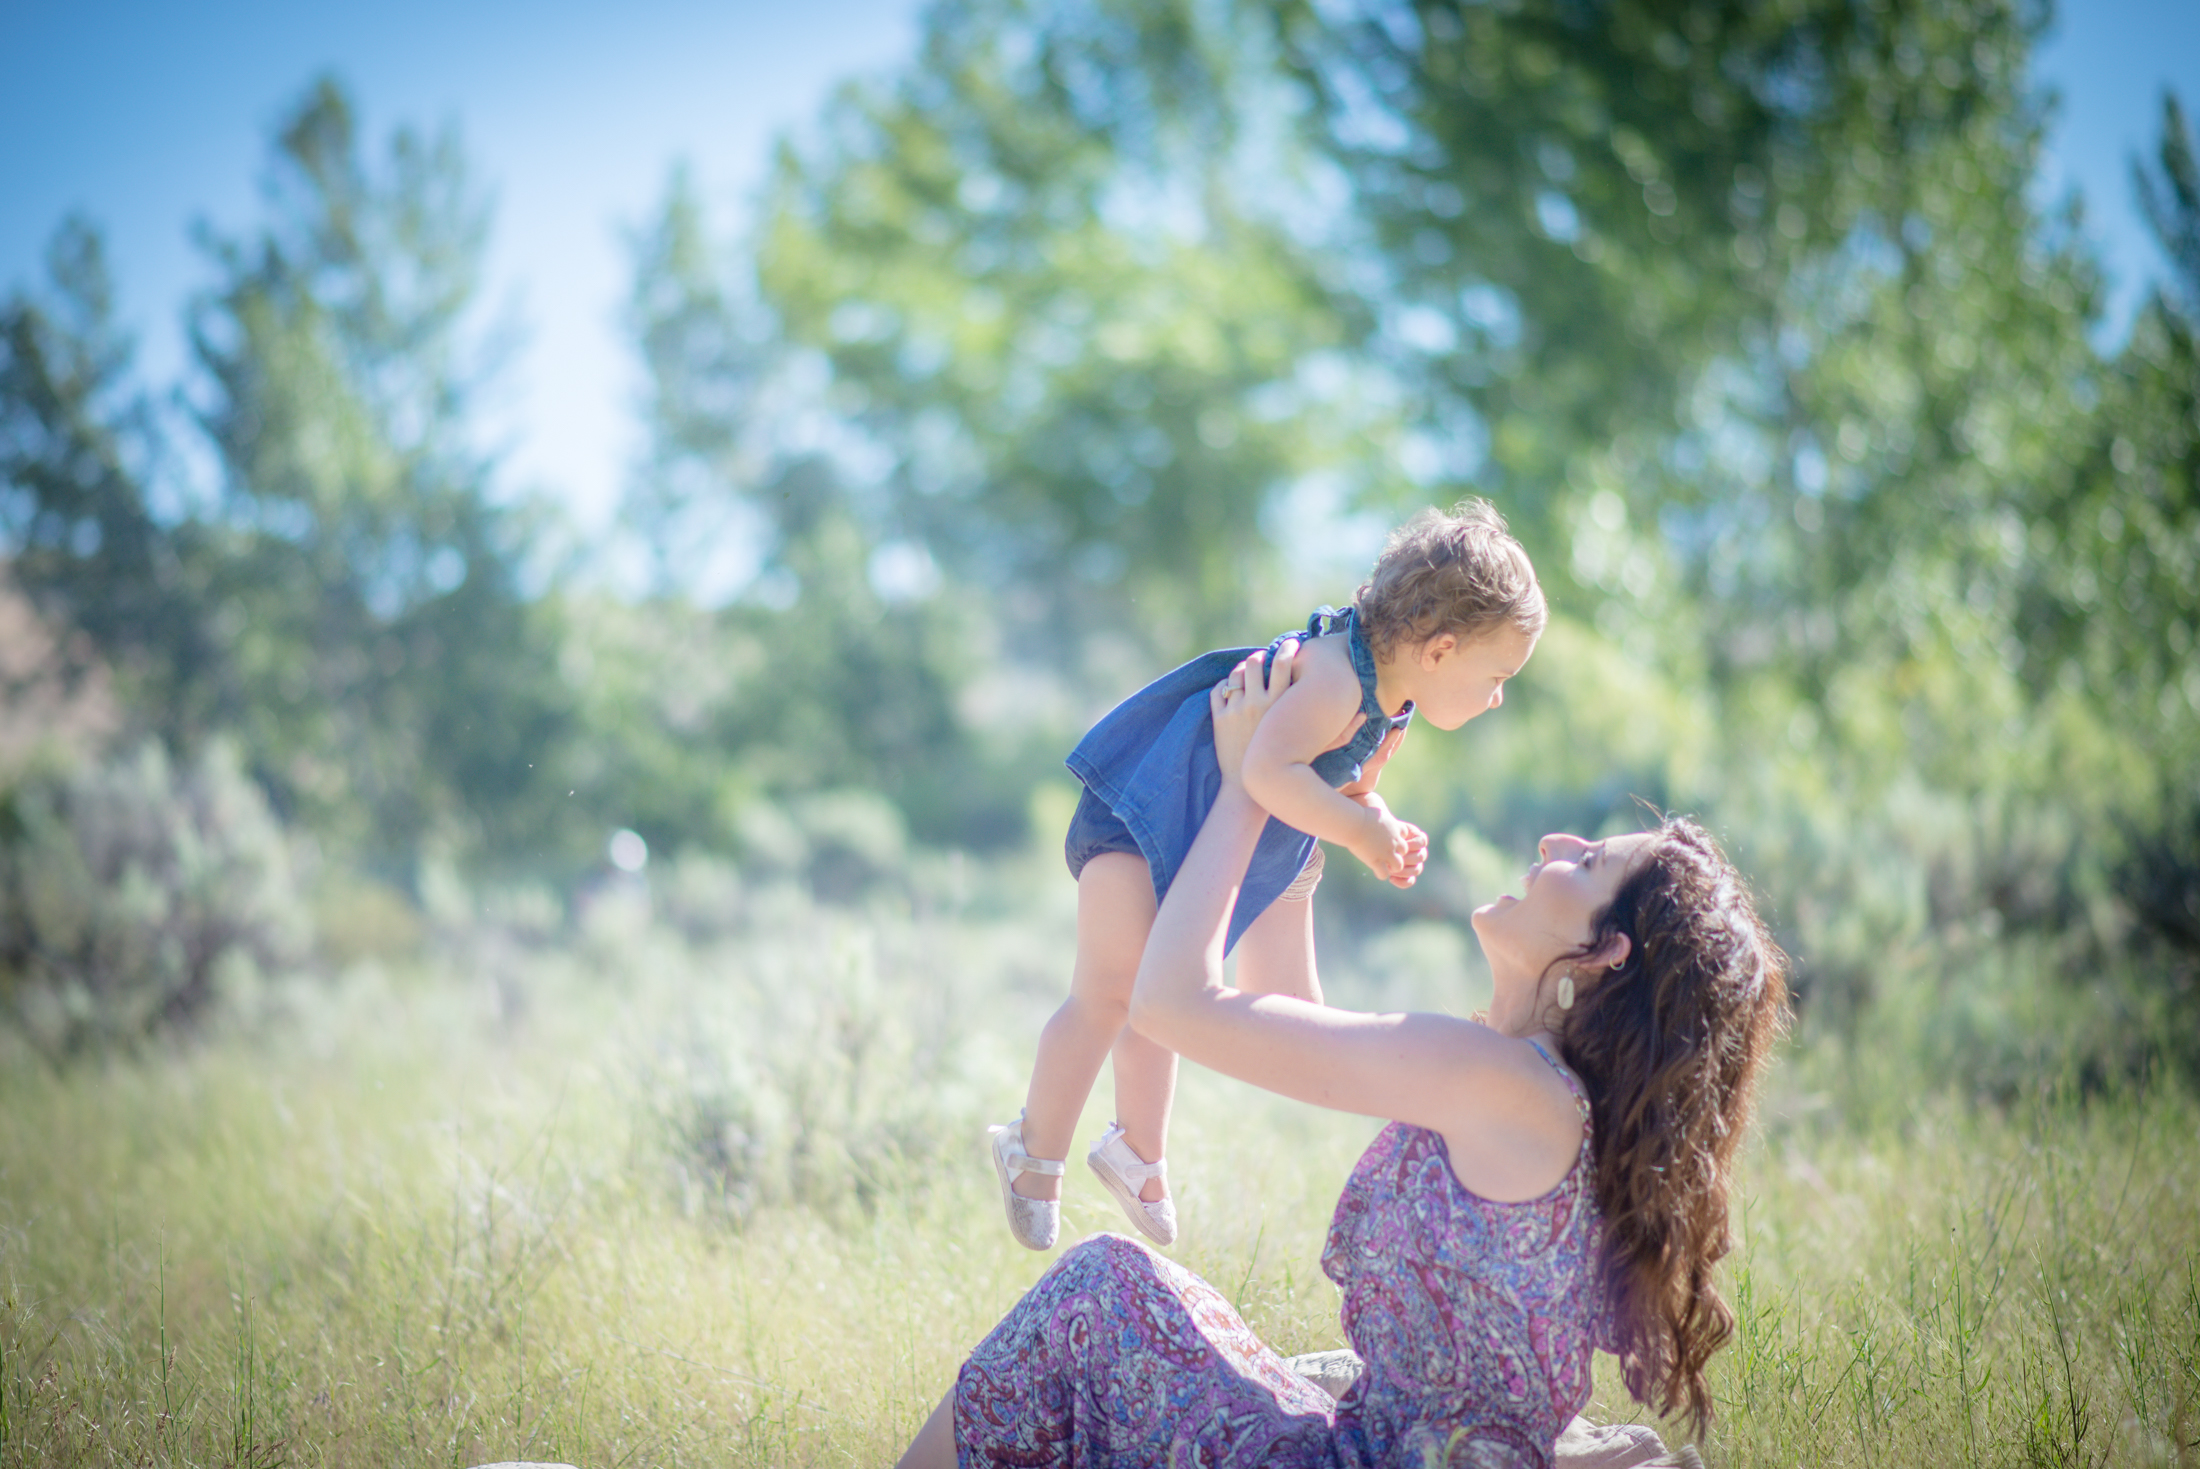 Natalie Koziuk Photography | Boise, ID Wedding Photographer | Boise, ID Lifestyle Photographer | Boise Foothills | Baby and mama